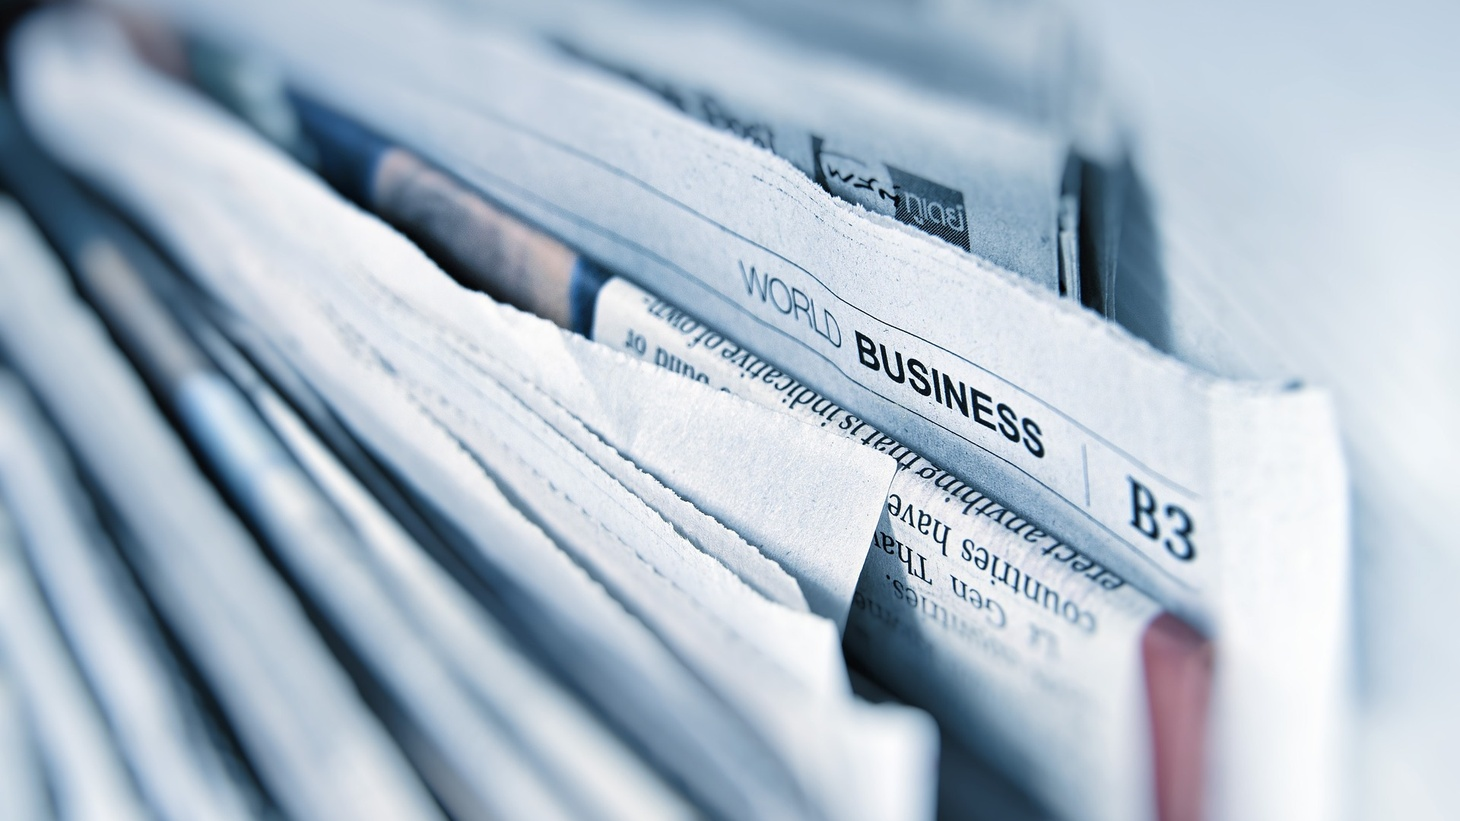 Newspapers and world business section.